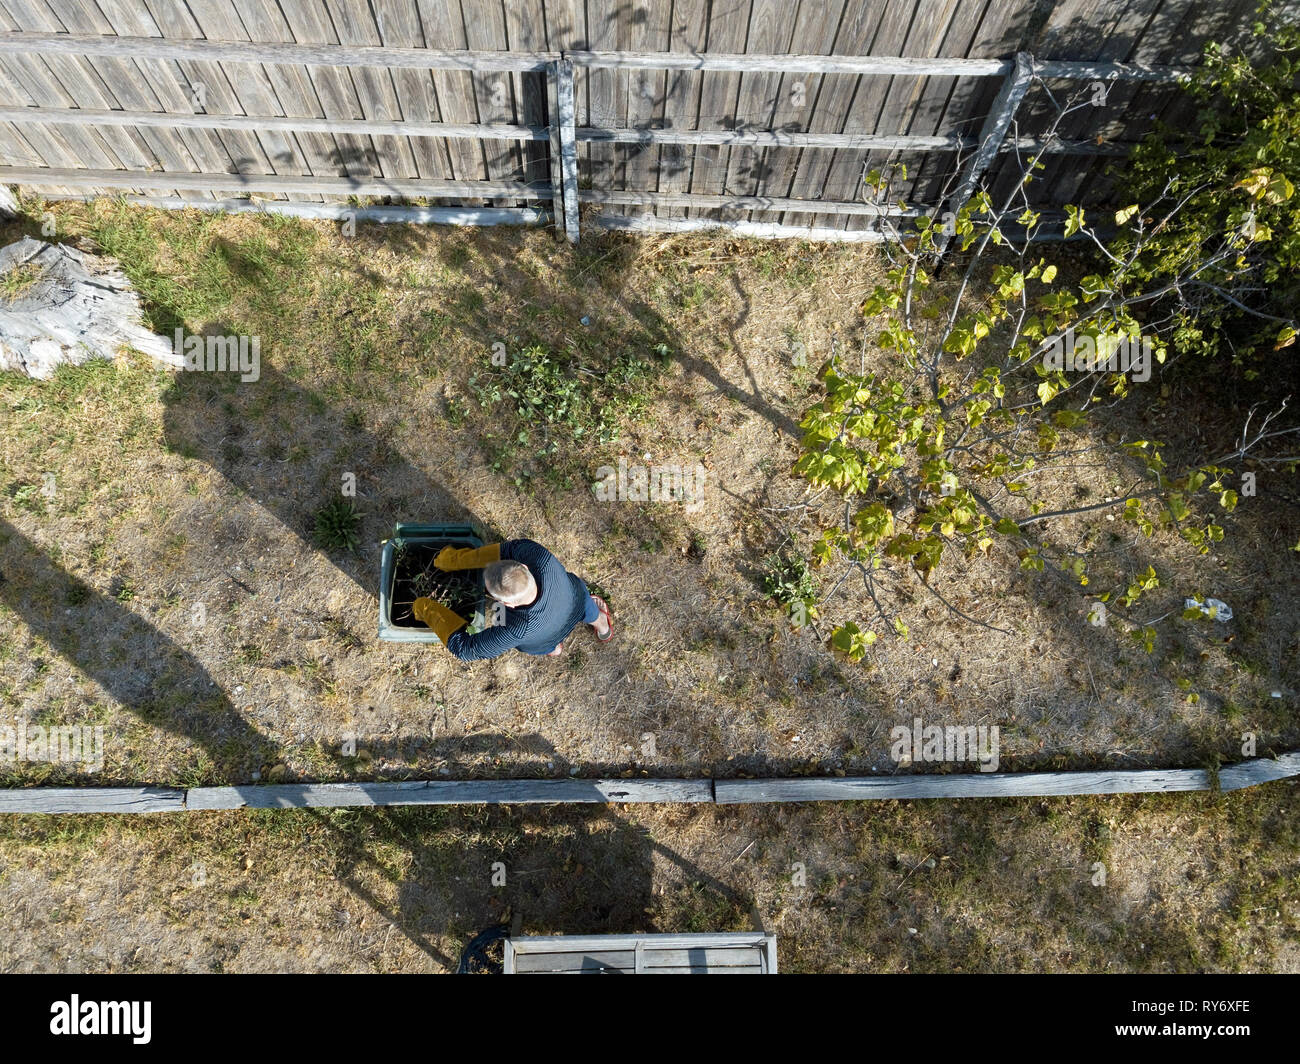 Australian pensioner gardening at home aerial view from above. Aerial photography in Victoria, Australia. - Stock Image